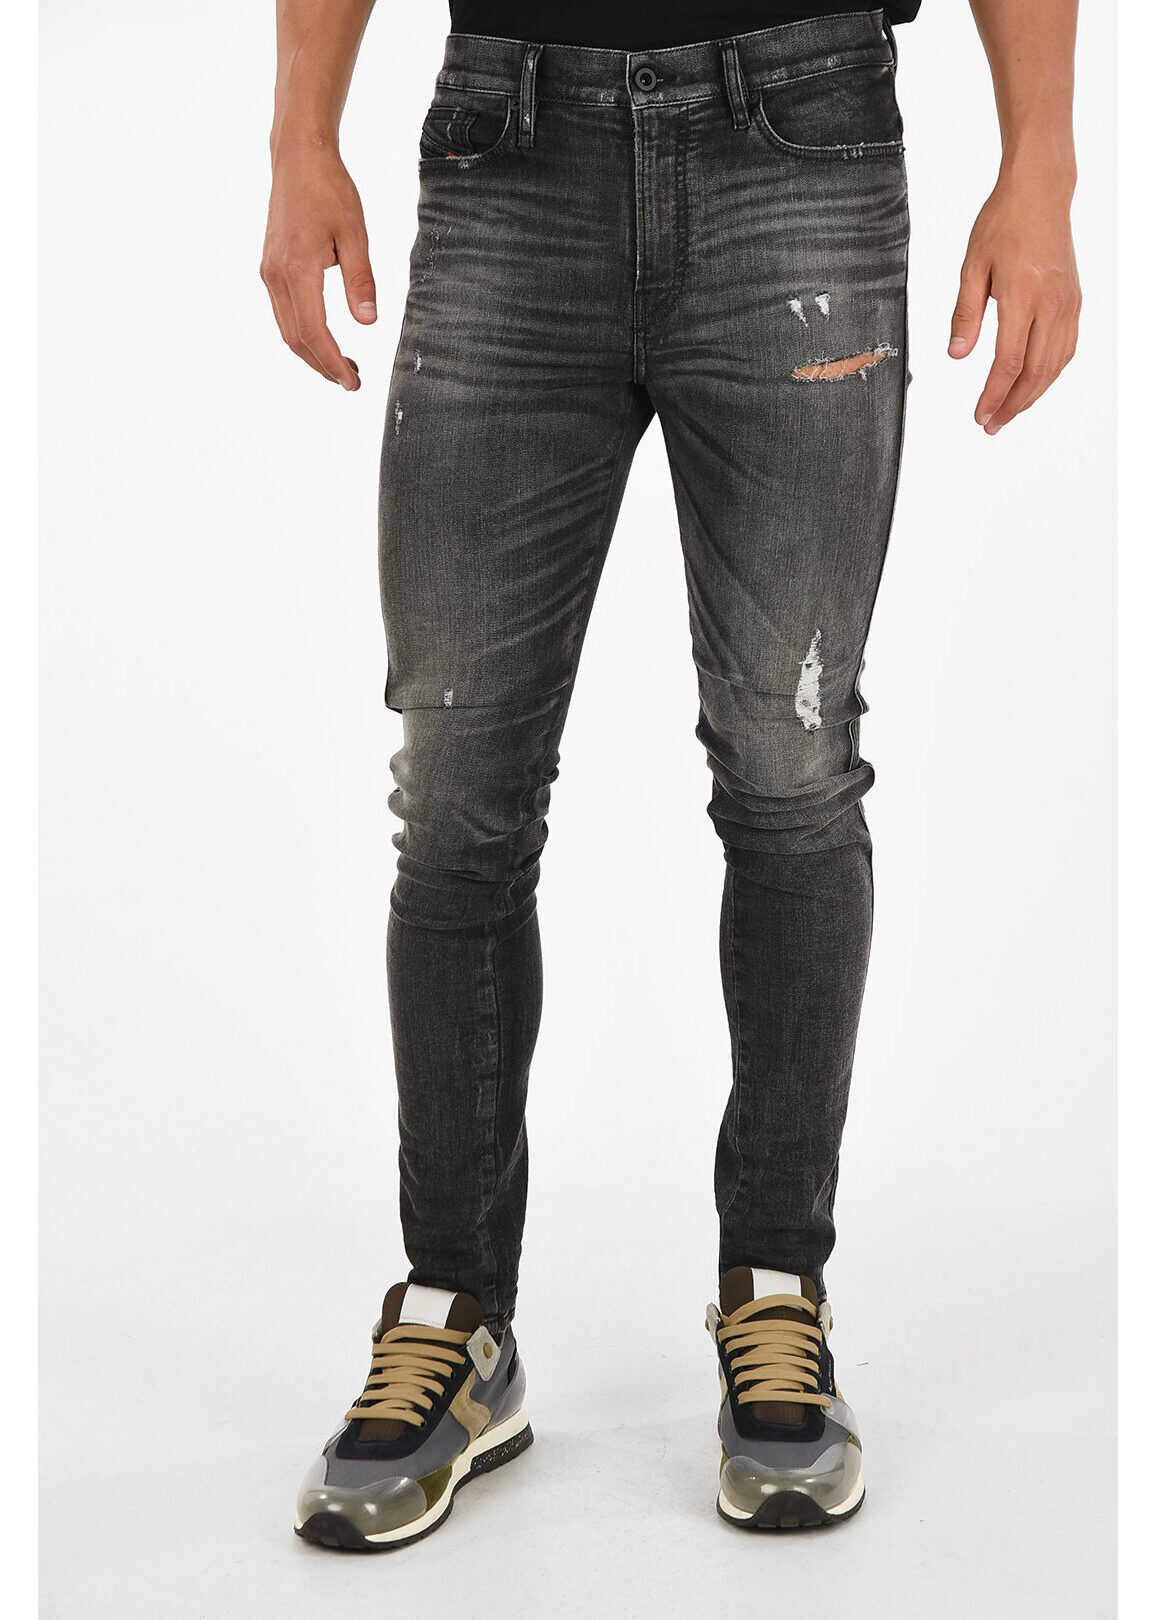 Diesel 15cm Slim Fit D-REEFT-T Jogg Jeans GRAY imagine